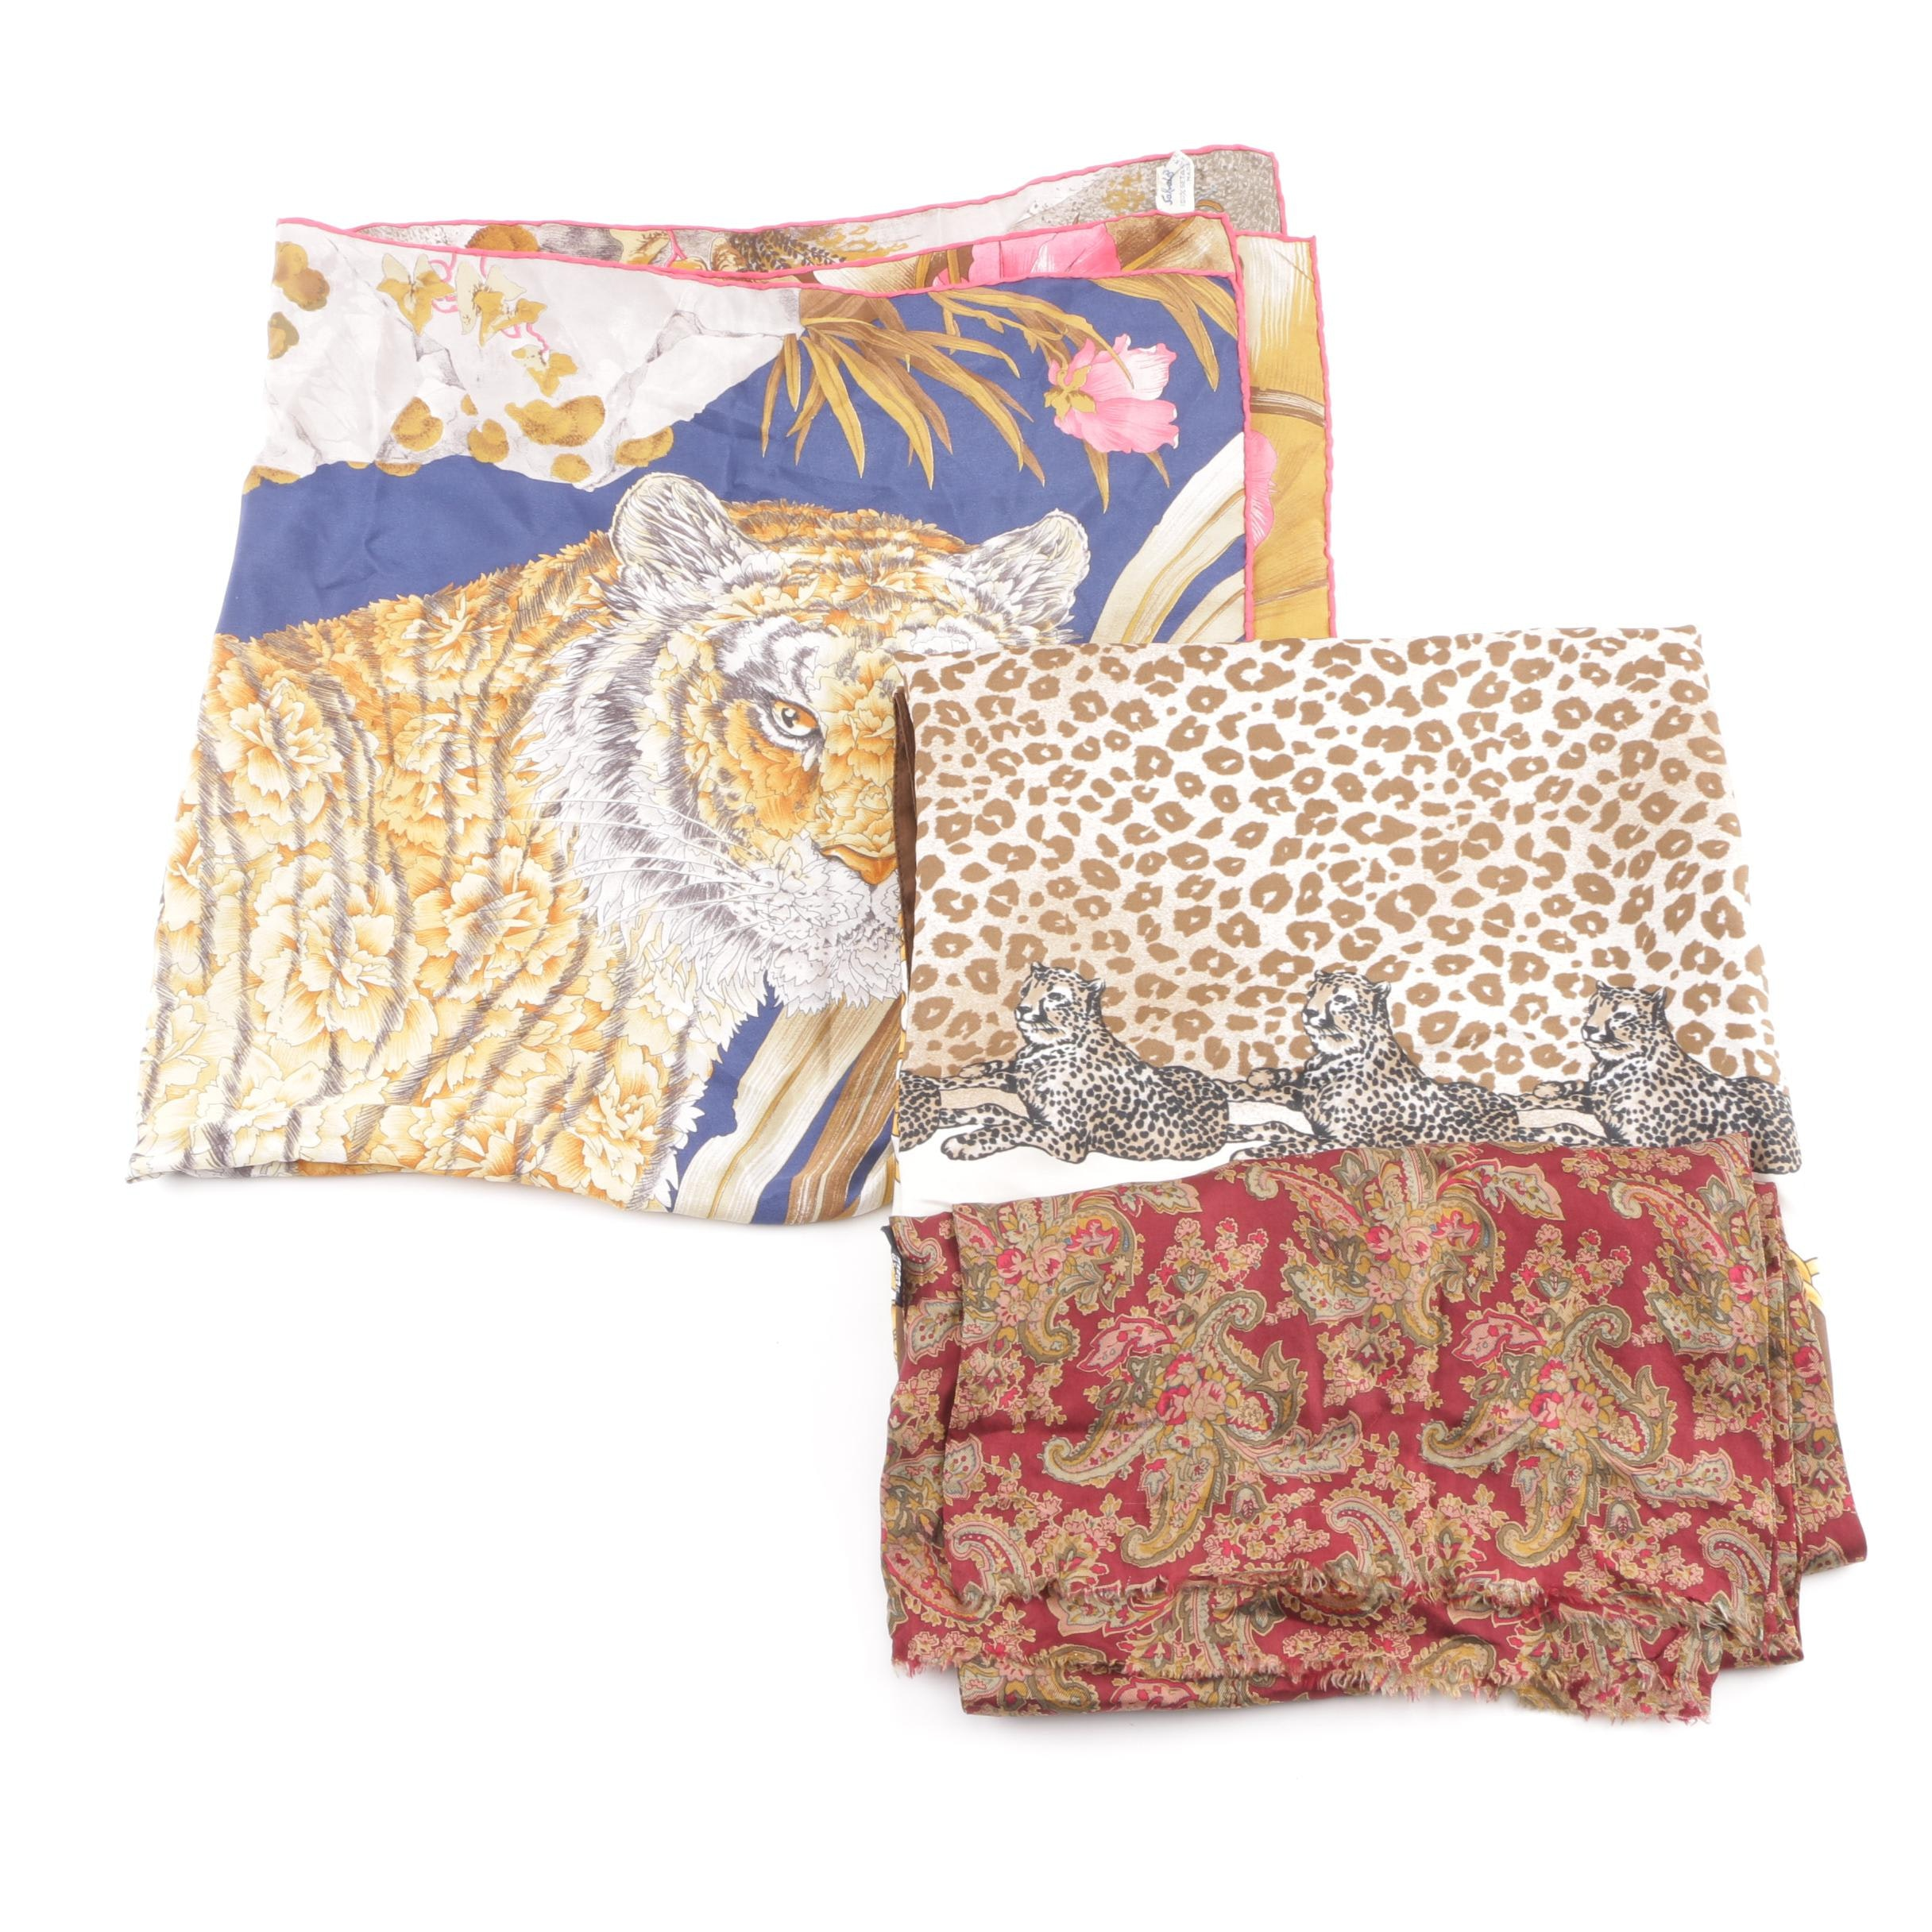 Women's Floral and Animal Print Scarves Including Salvatore Ferragamo